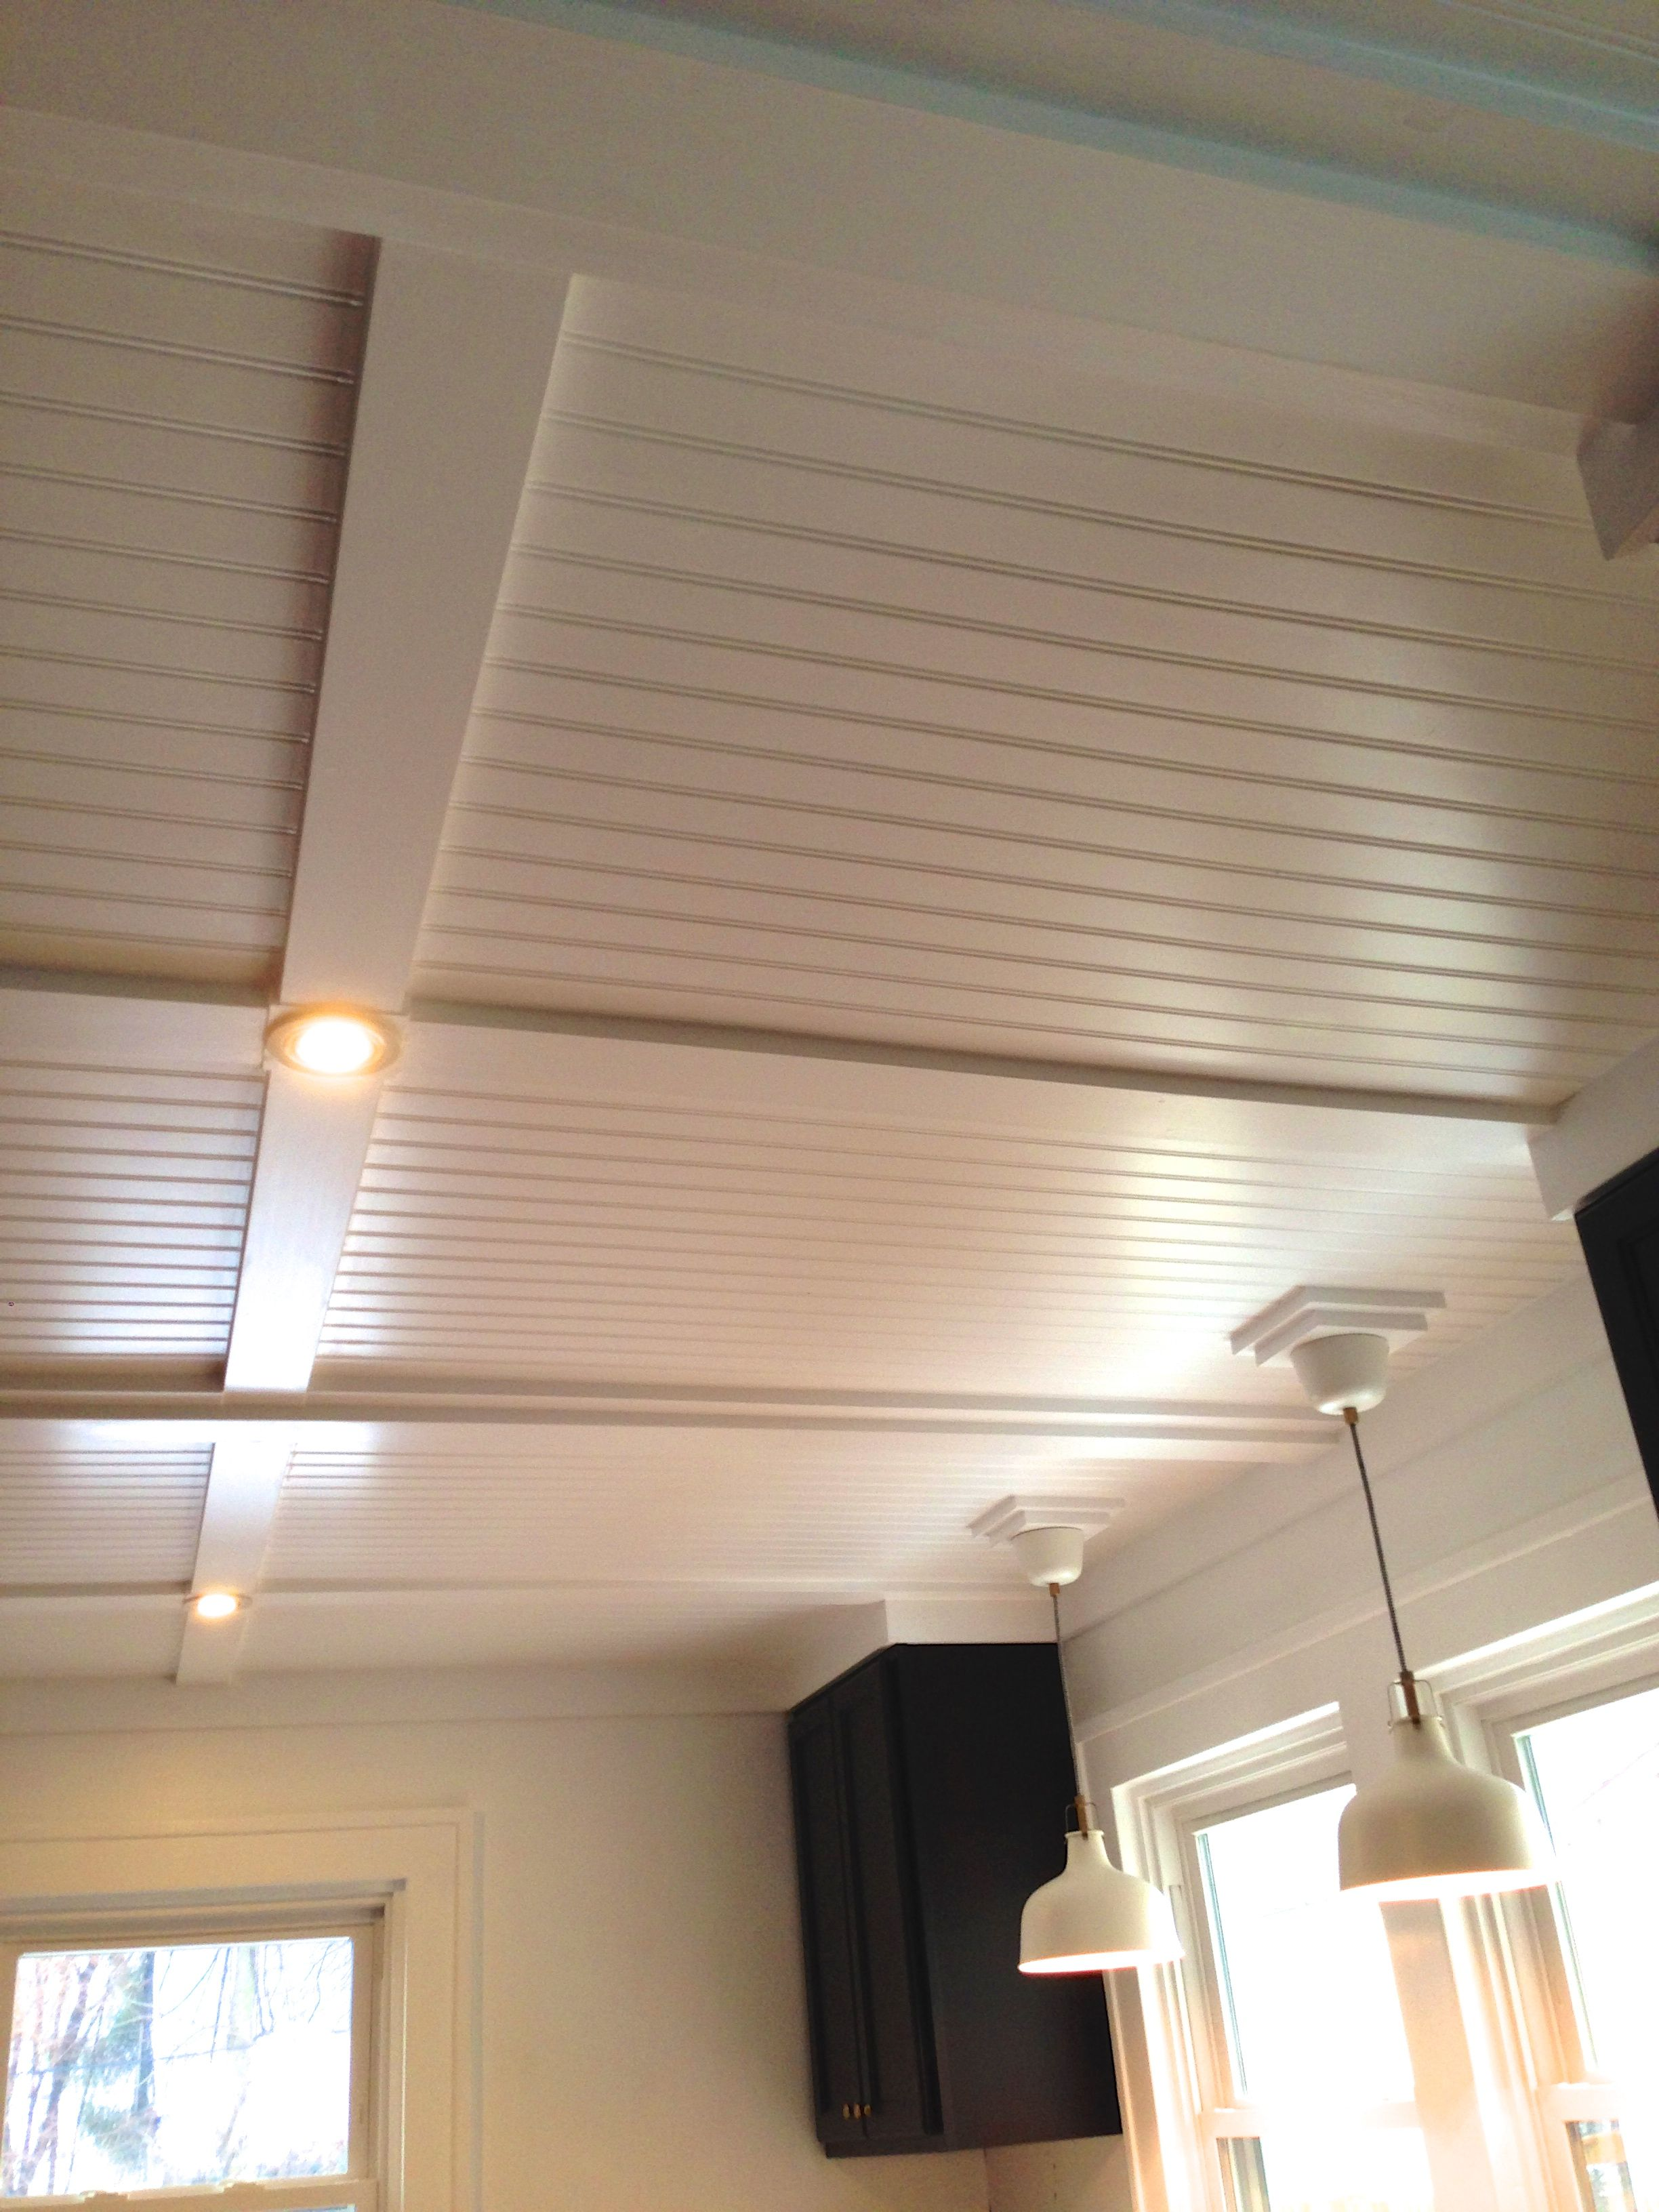 awesome Ceiling Tiles Over Popcorn Ceiling Part - 7: great way to cover up ugly textured ceilings.